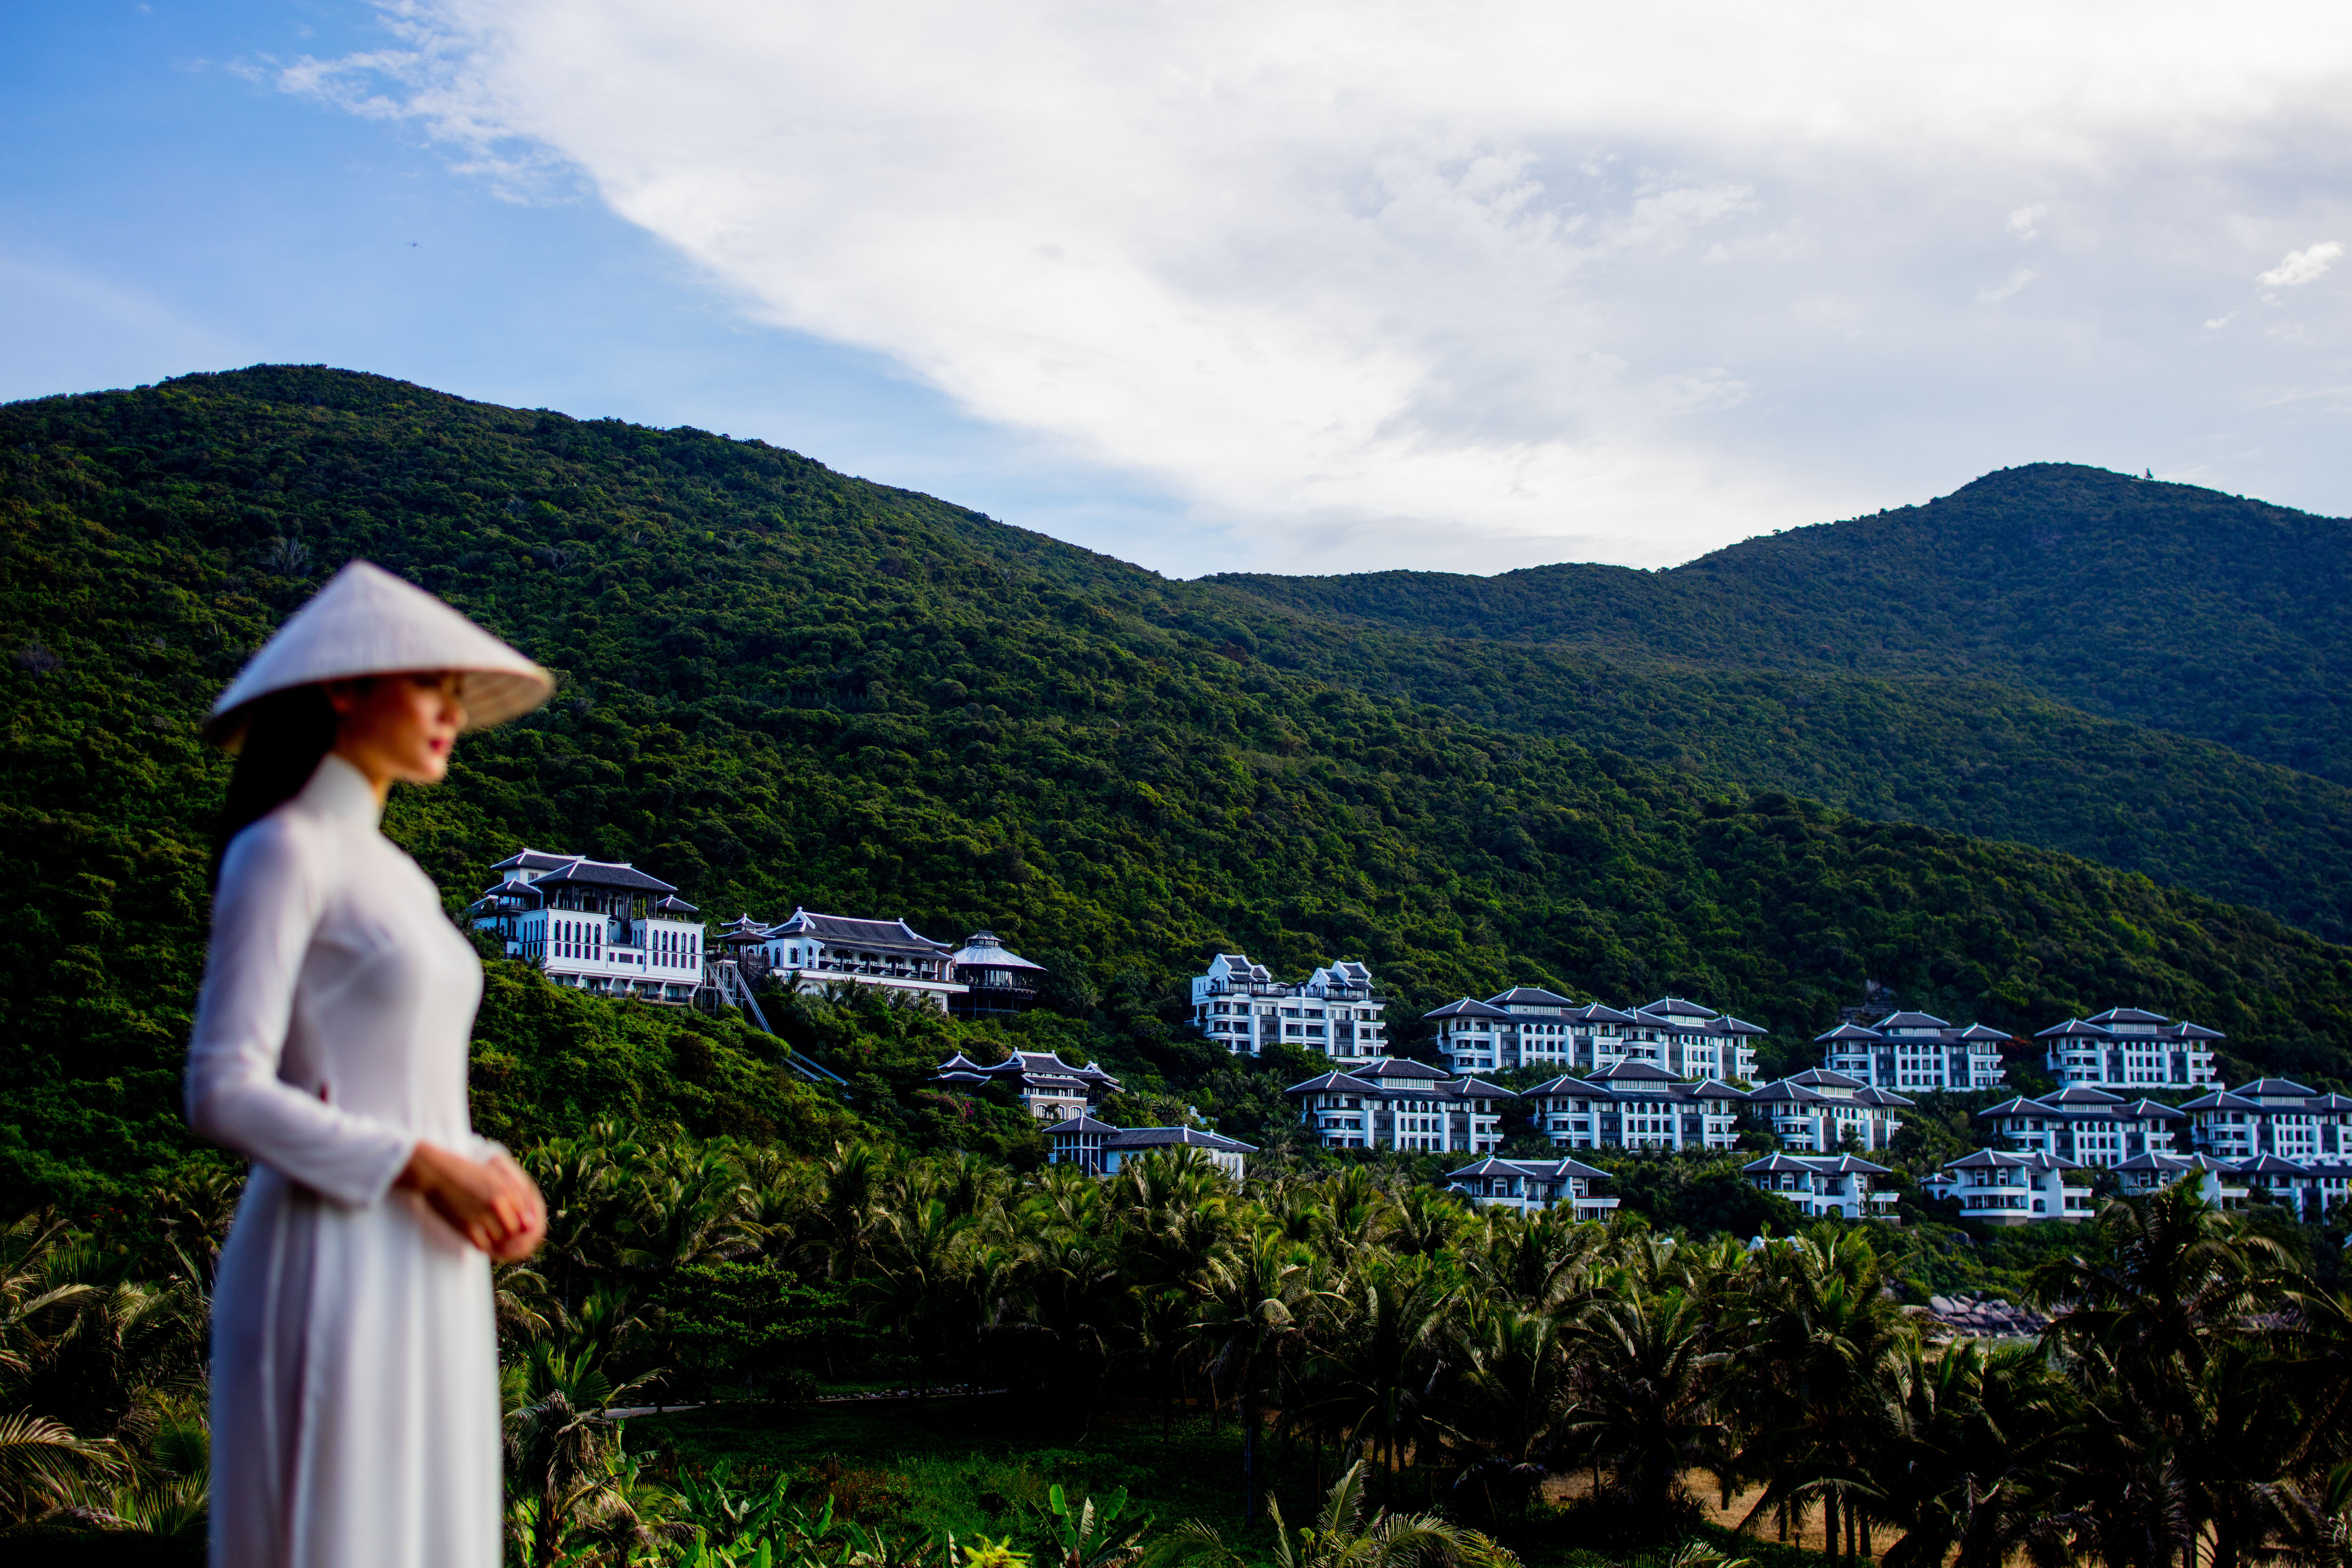 This is where APEC leaders will stay for 2017 summit in Vietnam